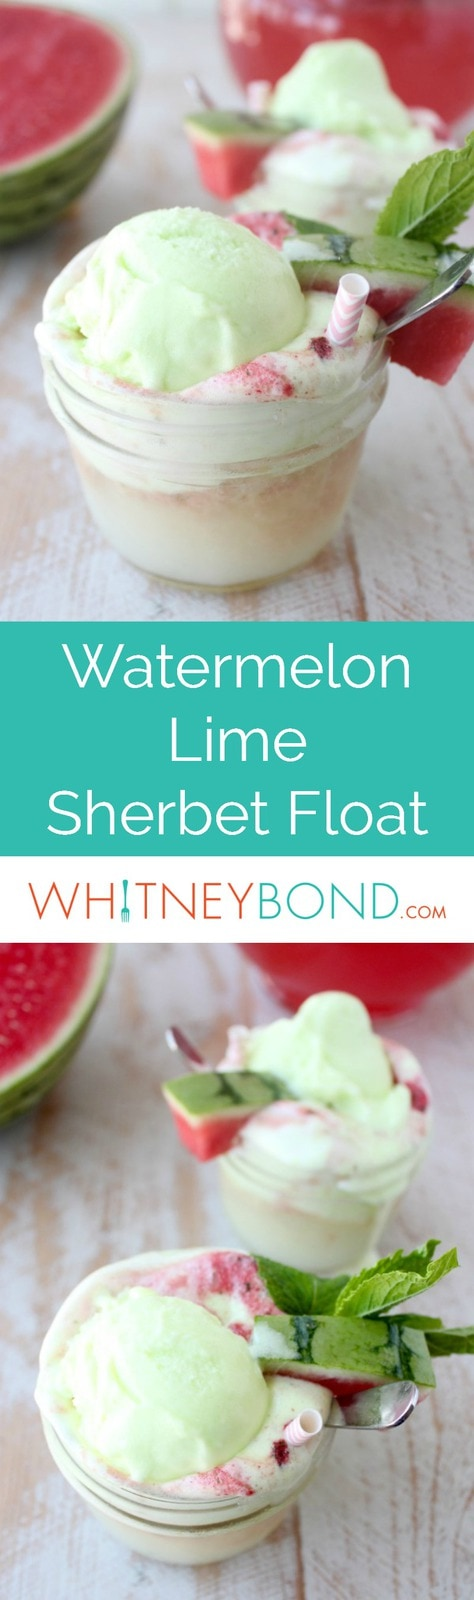 Fresh watermelon and mint are combined with lemon lime soda and poured over lime sherbet in this delicious sherbet float recipe, perfect for summer!